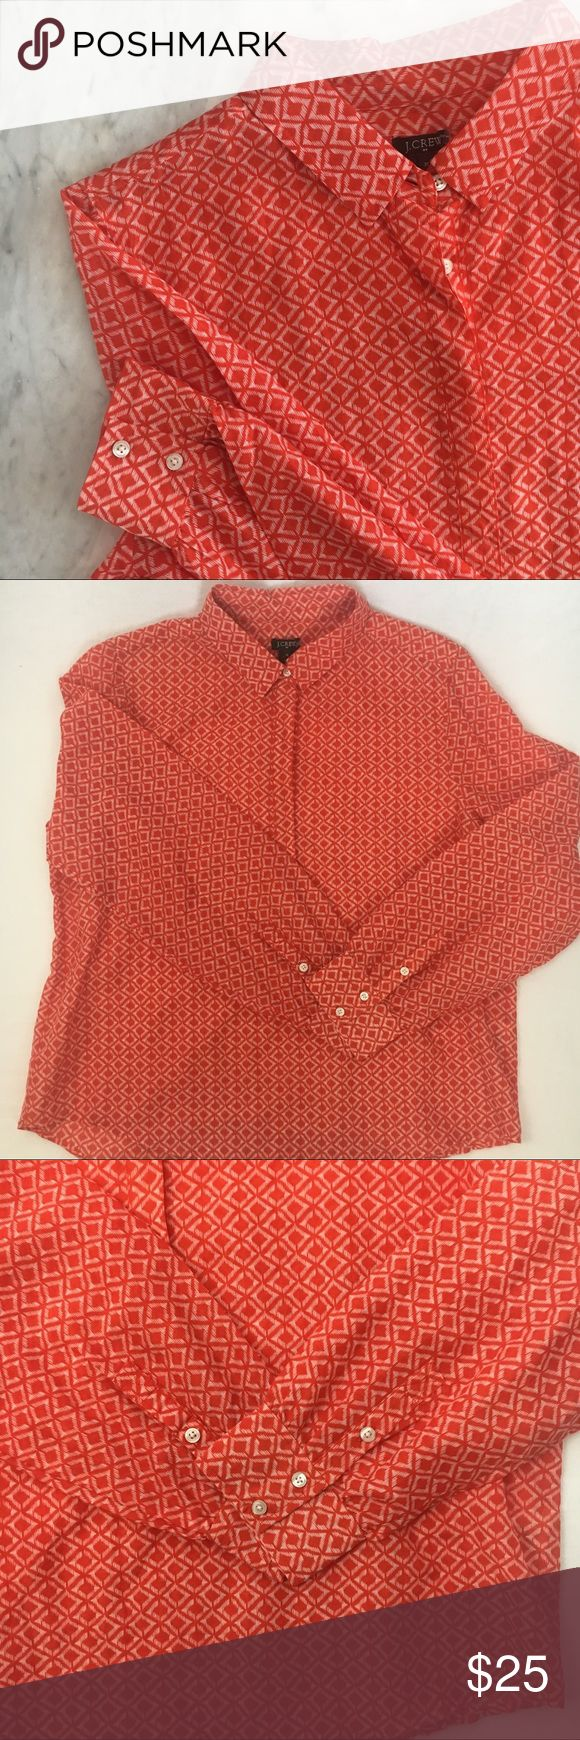 J. Crew | Lightweight Orange Long Sleeve Top This shirt from J. Crew is perfect on its own or for layering. it has hidden buttons going down the middle ending about midway. In excellent condition, no notable flaws J. Crew Tops Button Down Shirts